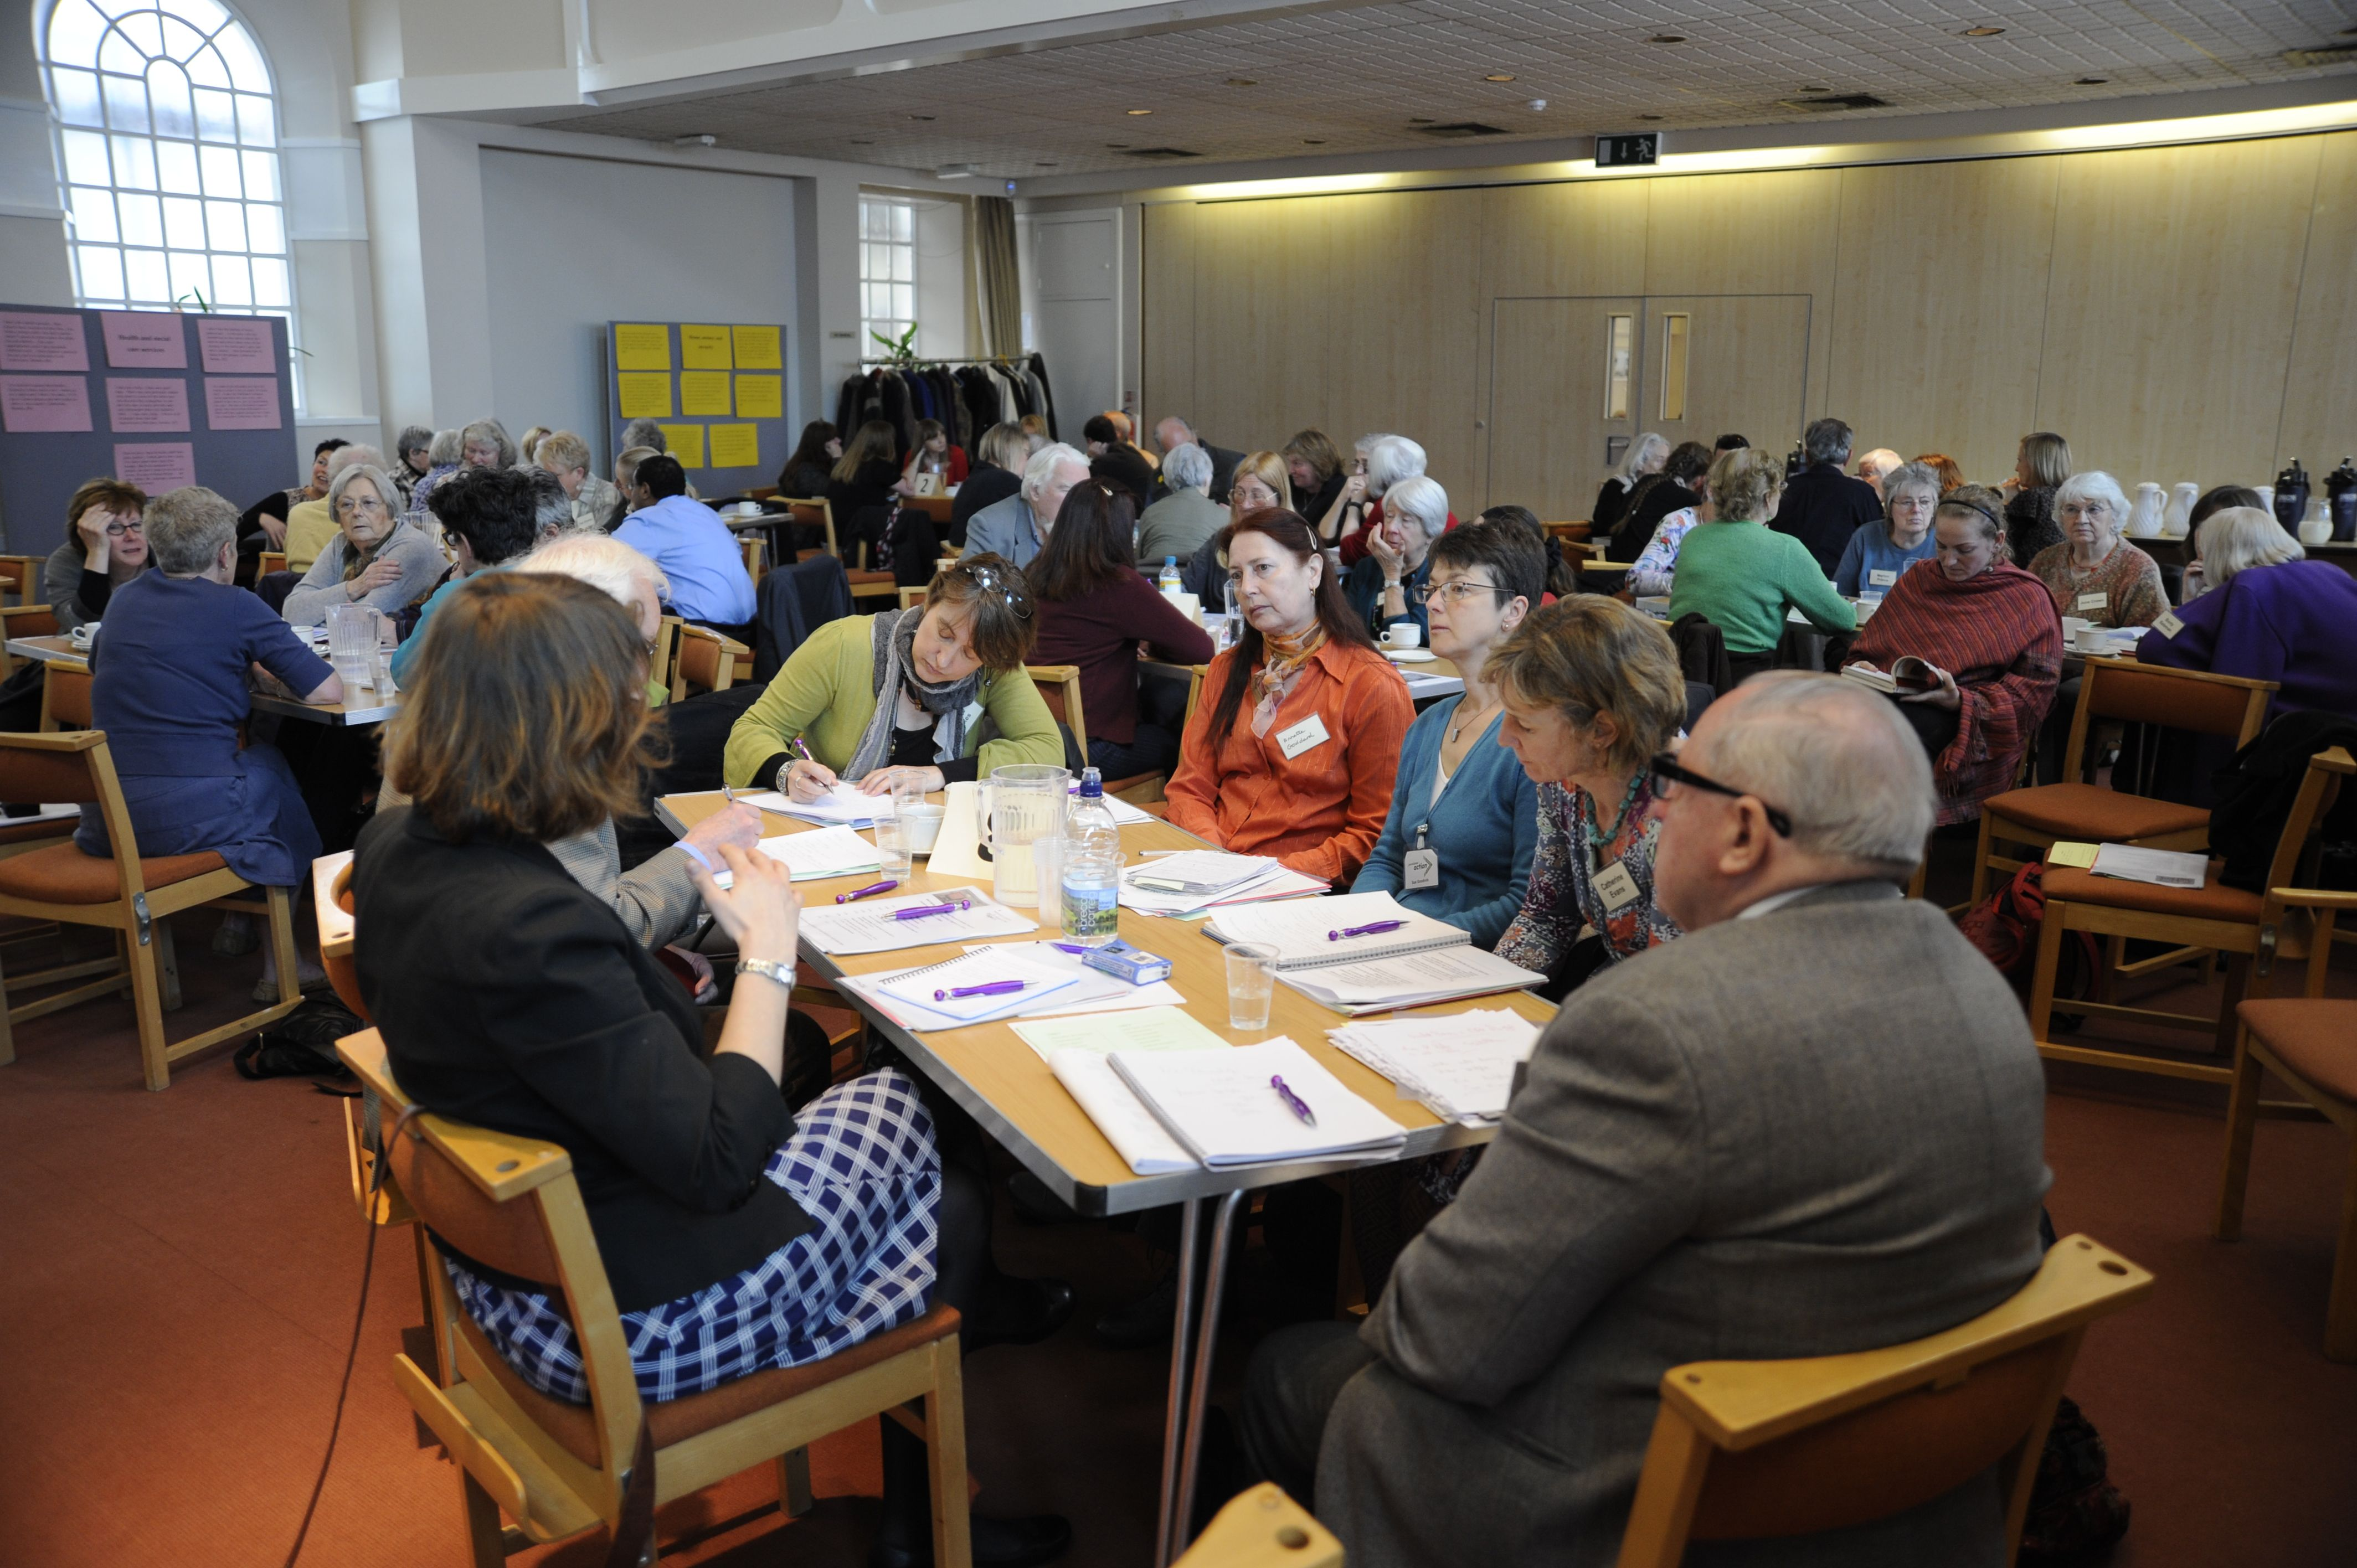 Image of group illustrating the Care Ethics and Participation Research and Enterprise Group